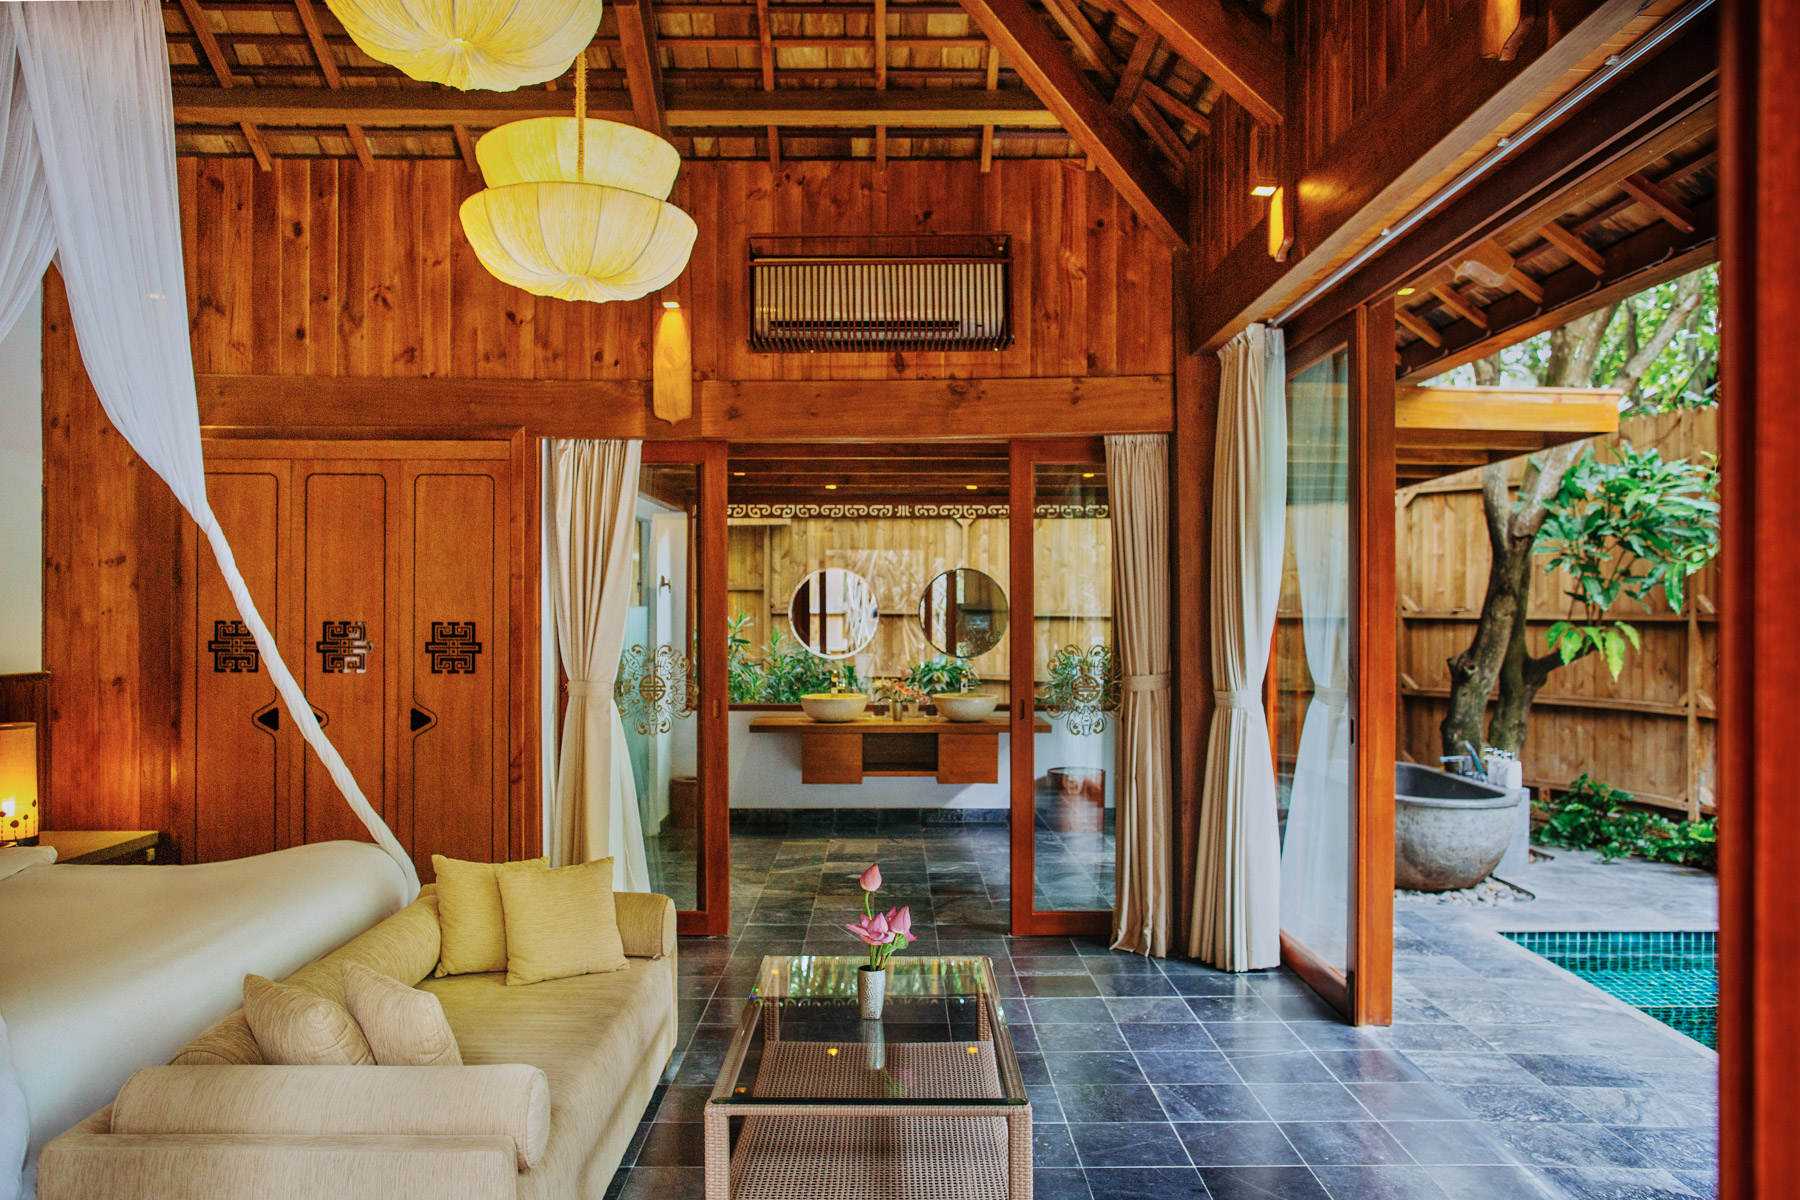 An open air suite at the An Lam riverside resort in southern Vietnam.